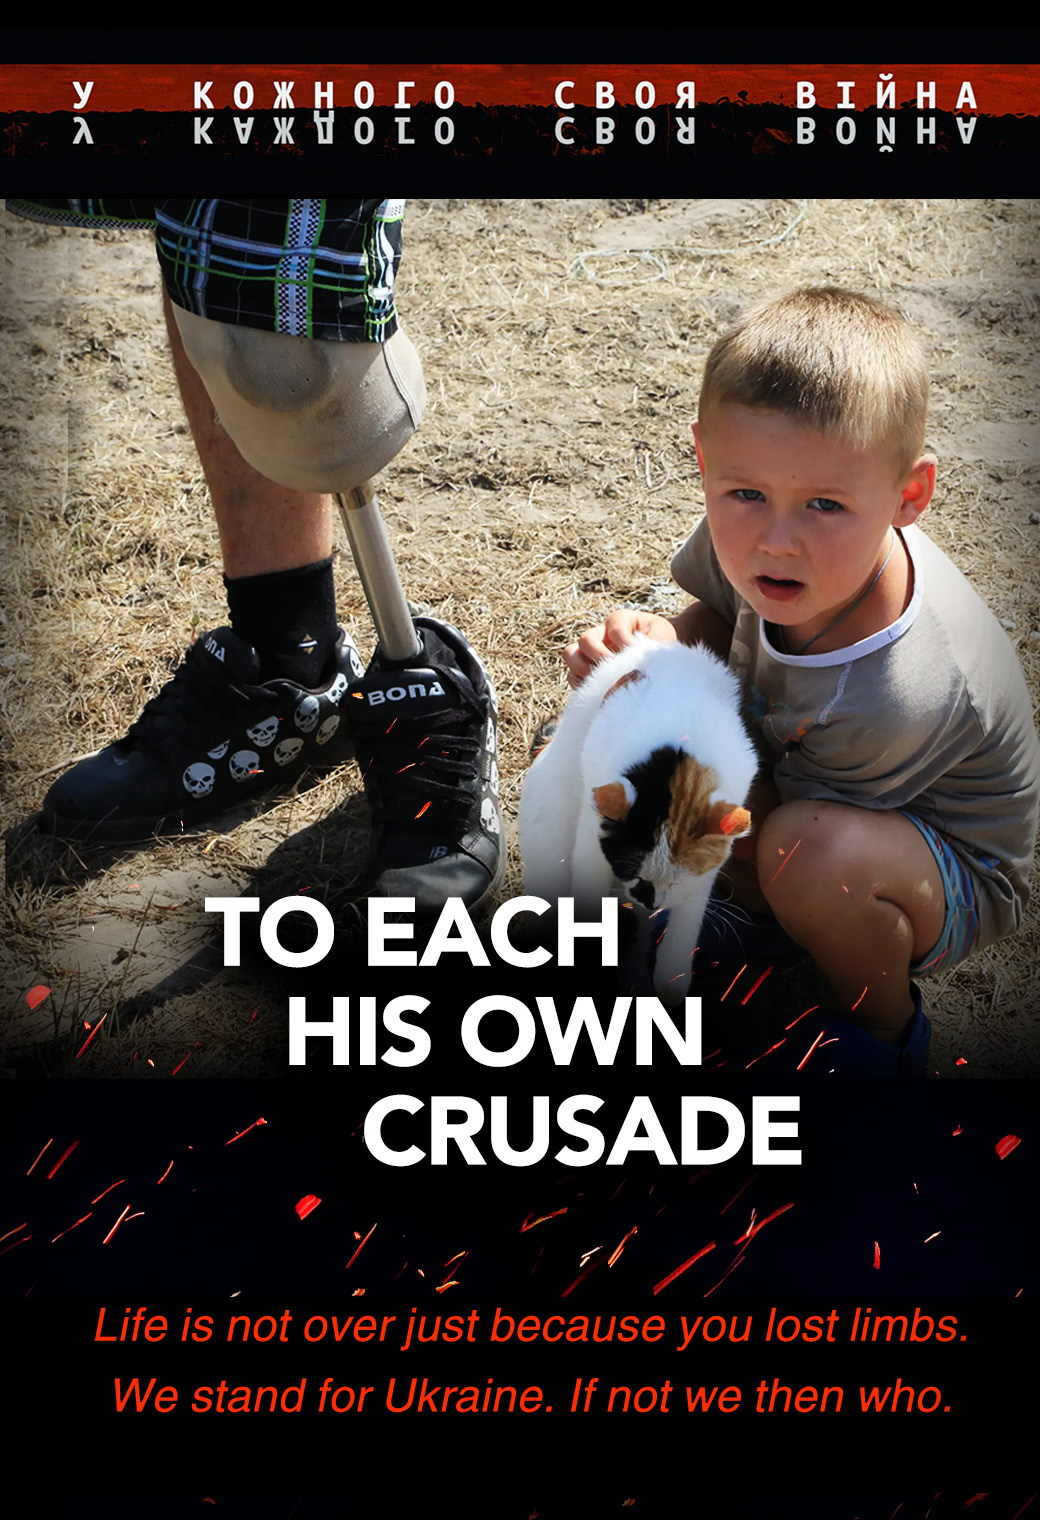 To Each His Own Crusade Movie Poster